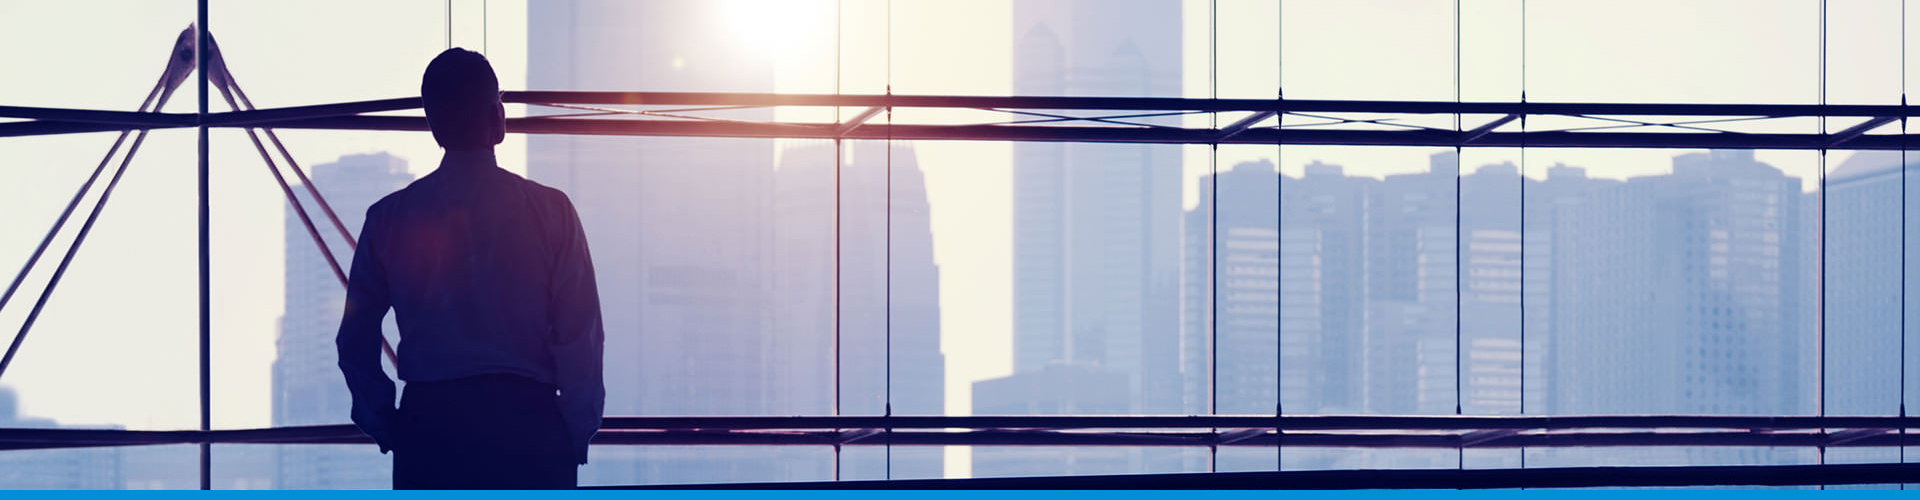 A business executive looks out the window of a boardroom as the sun sets or rises behind an urban skyline.